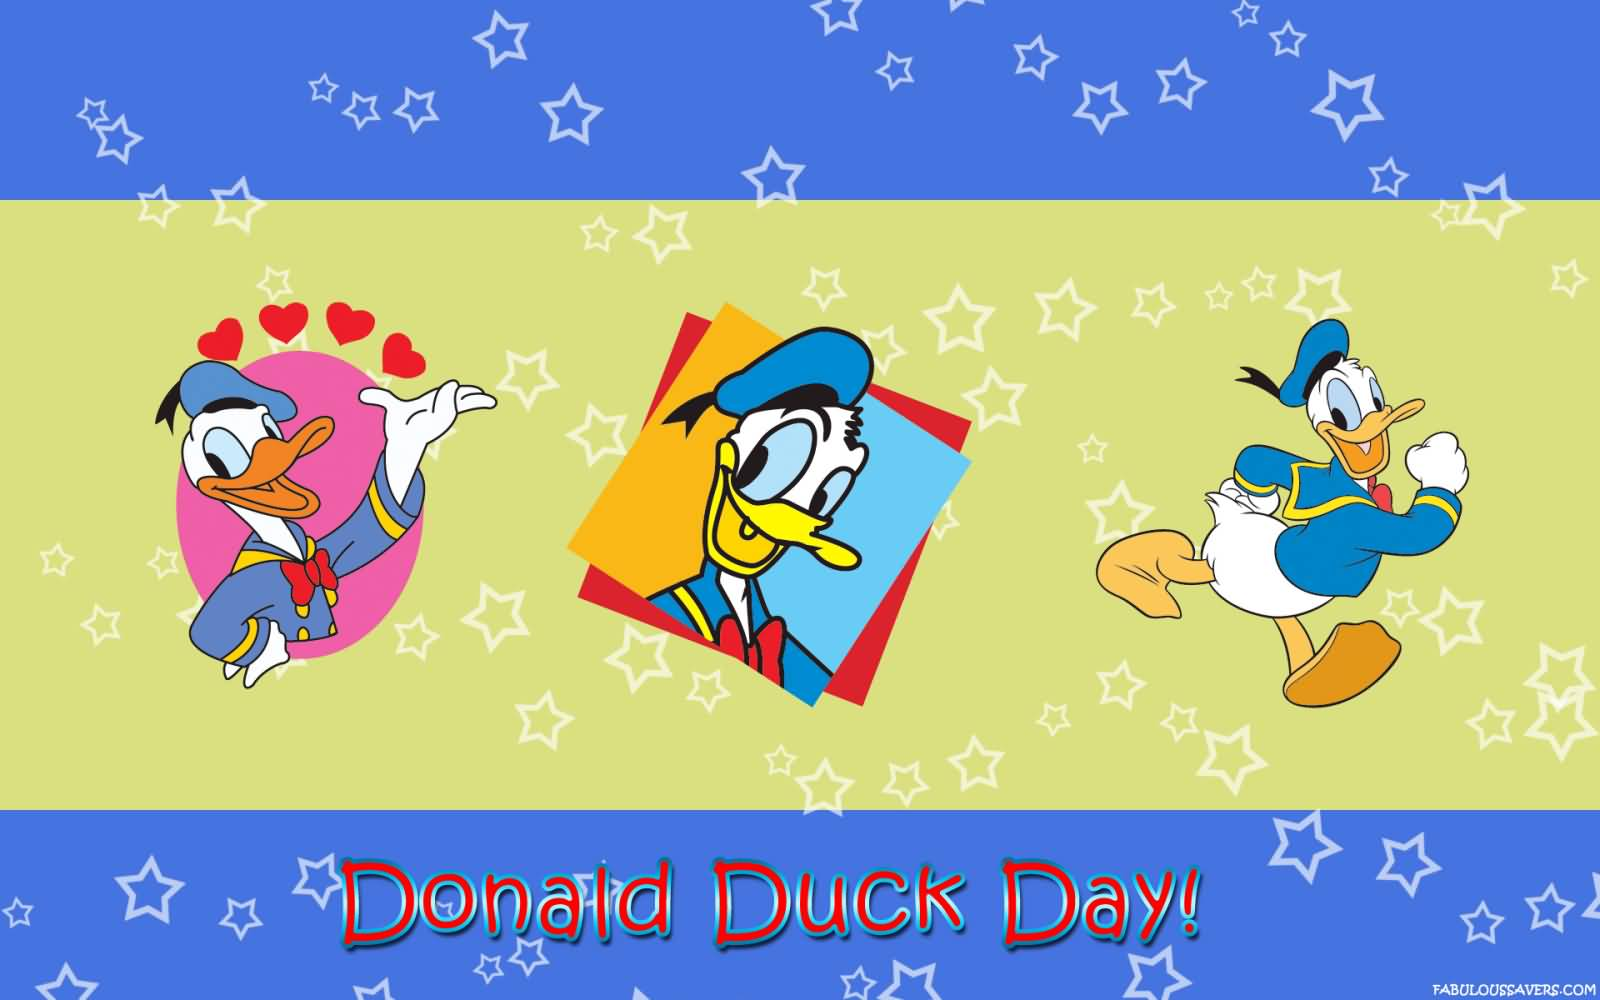 25 Happy Donald Duck Day Wishes And Greetings